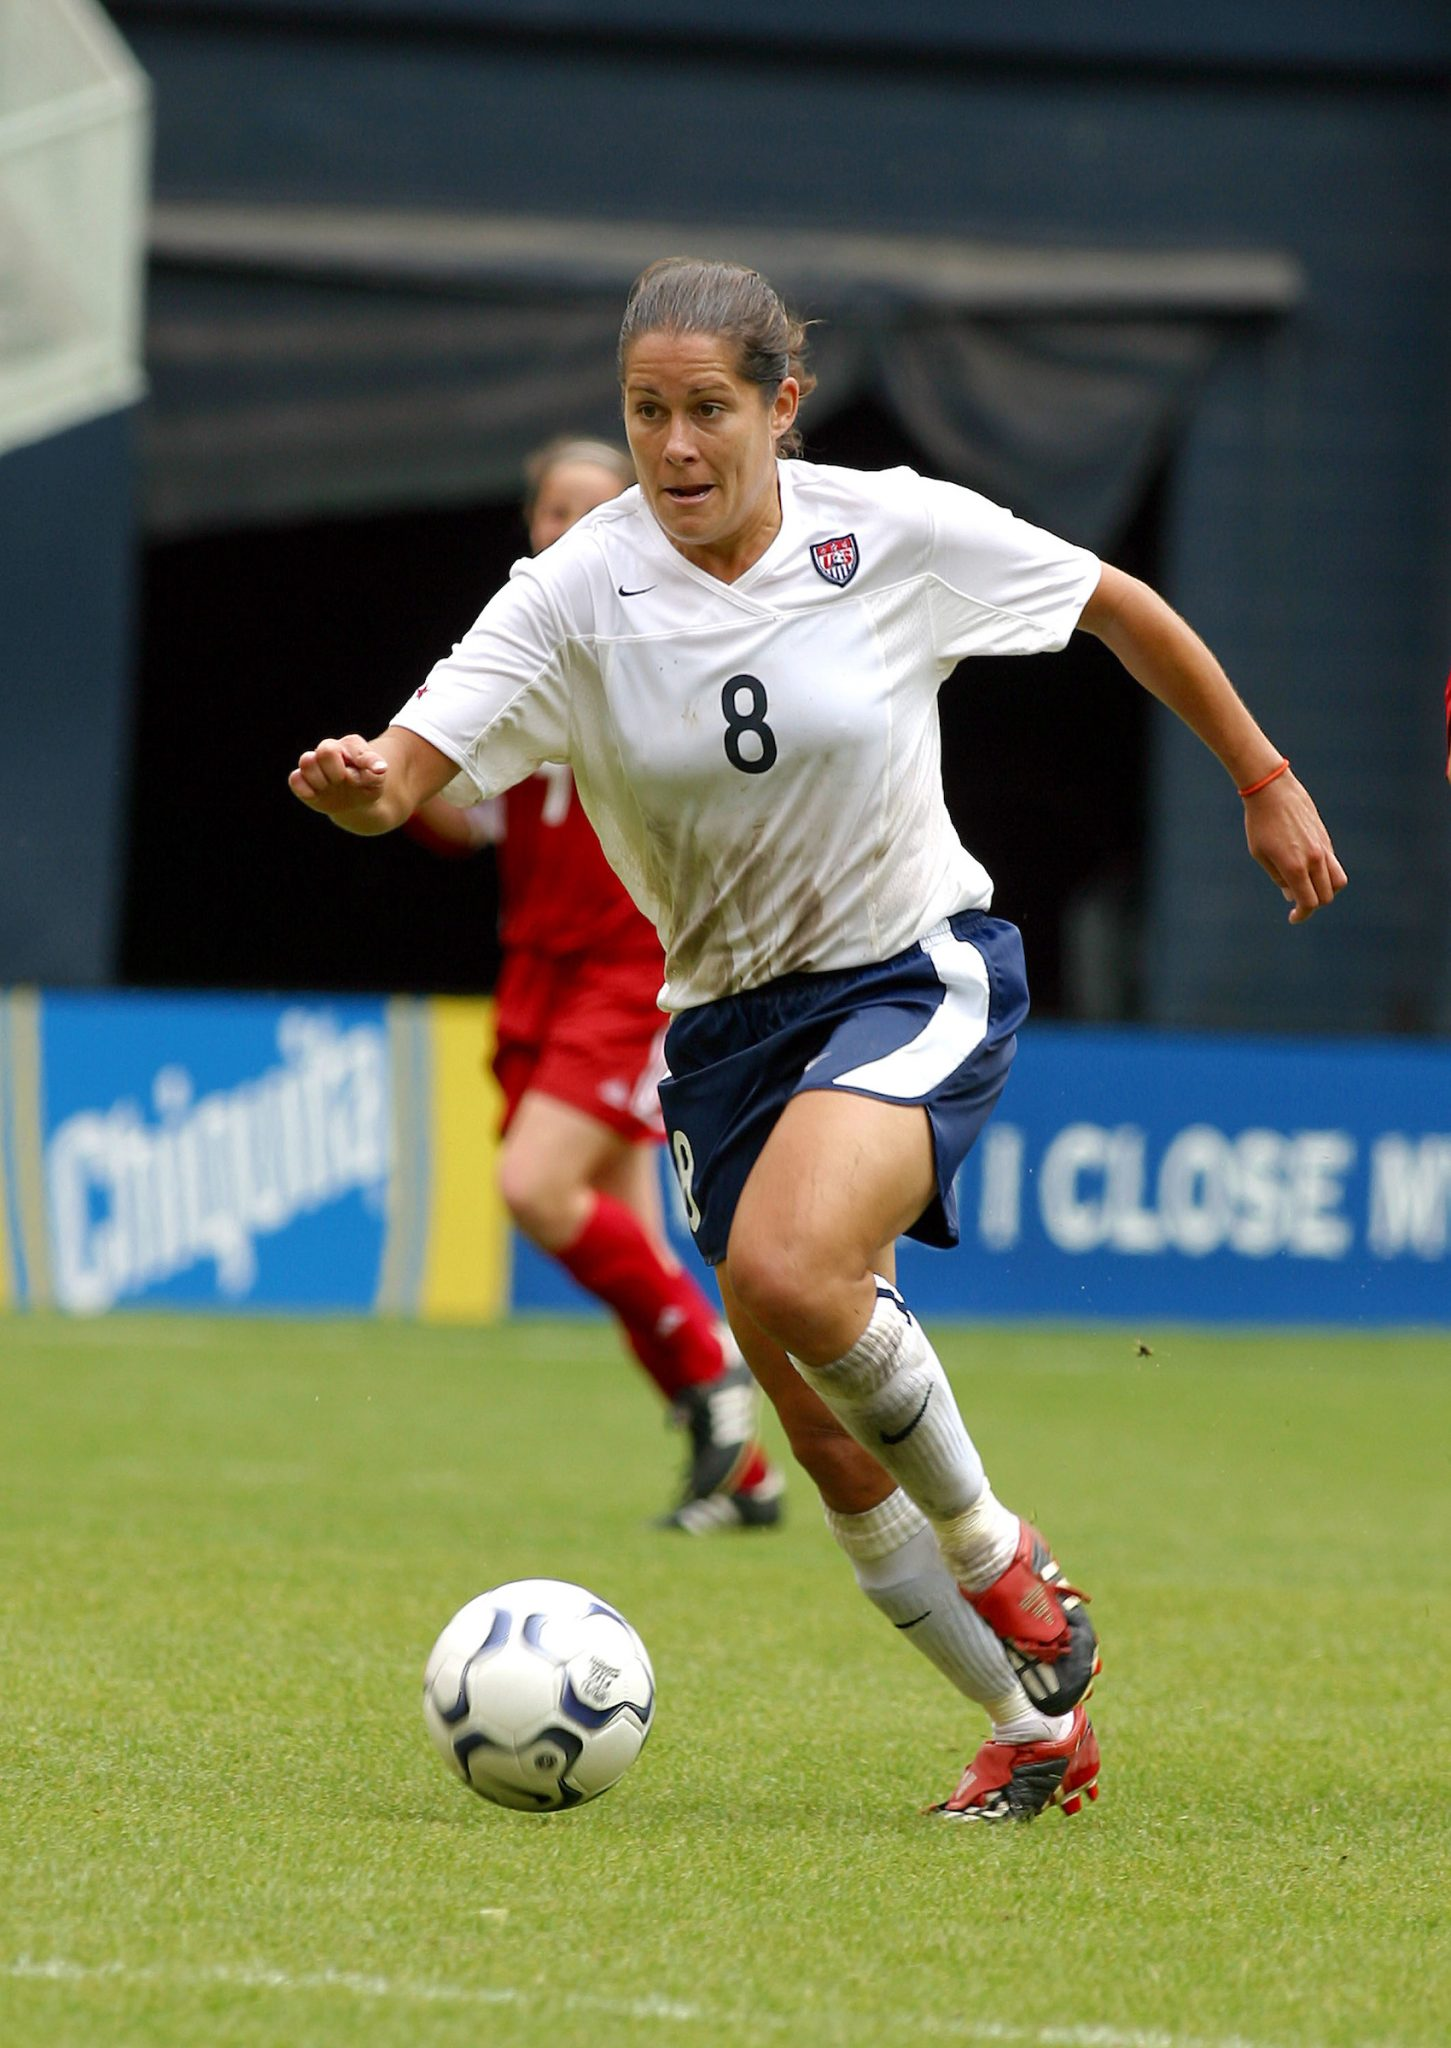 Shannon MacMillan, USWNT vs Canada April 26, 2003.